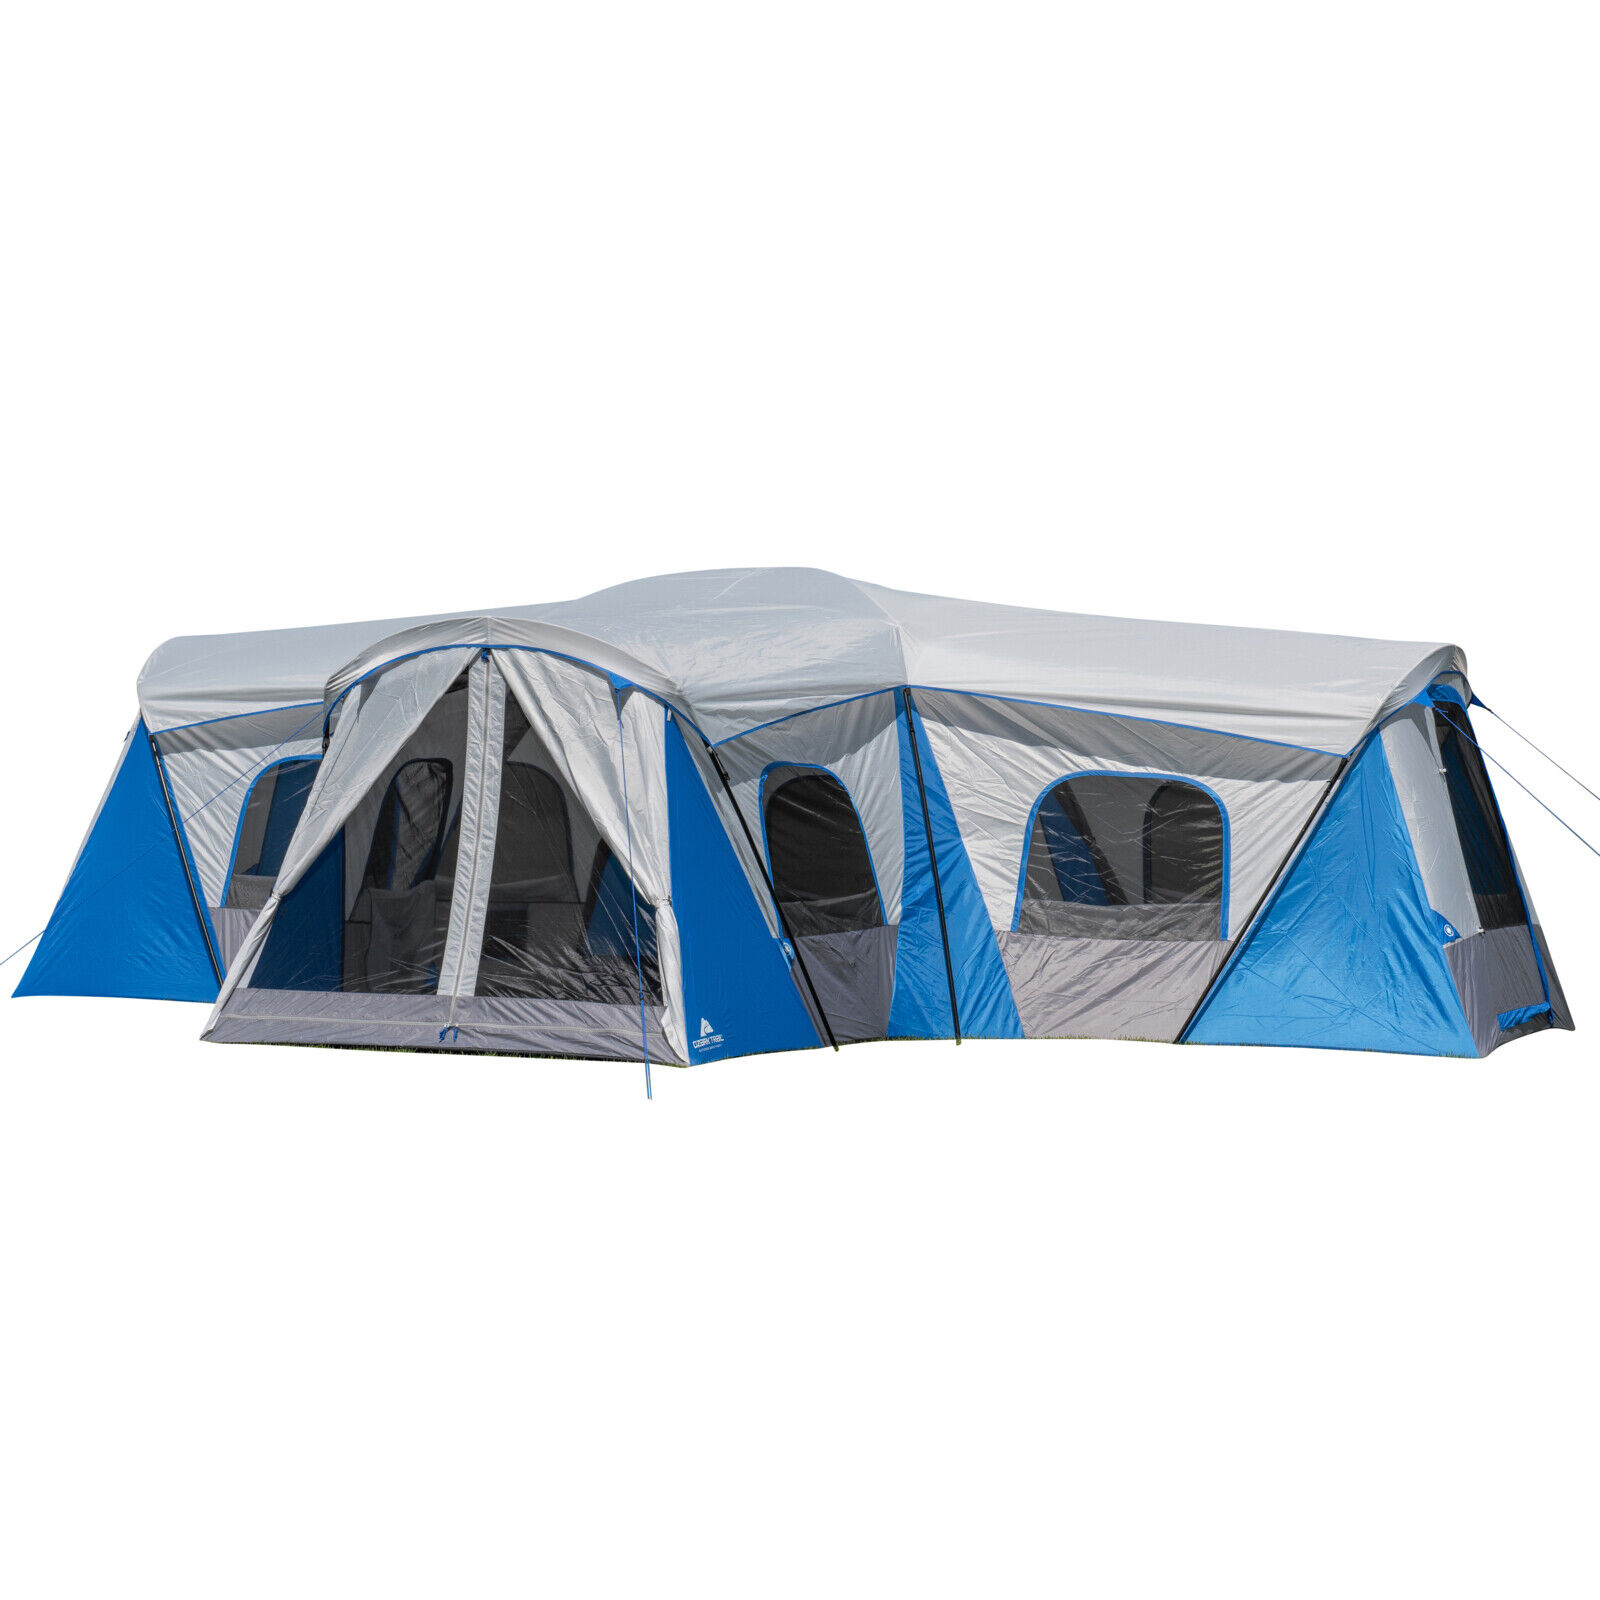 Large Ozark Trail 16 Person Family Cabin Tent with a indoor MOVIE SCREEN